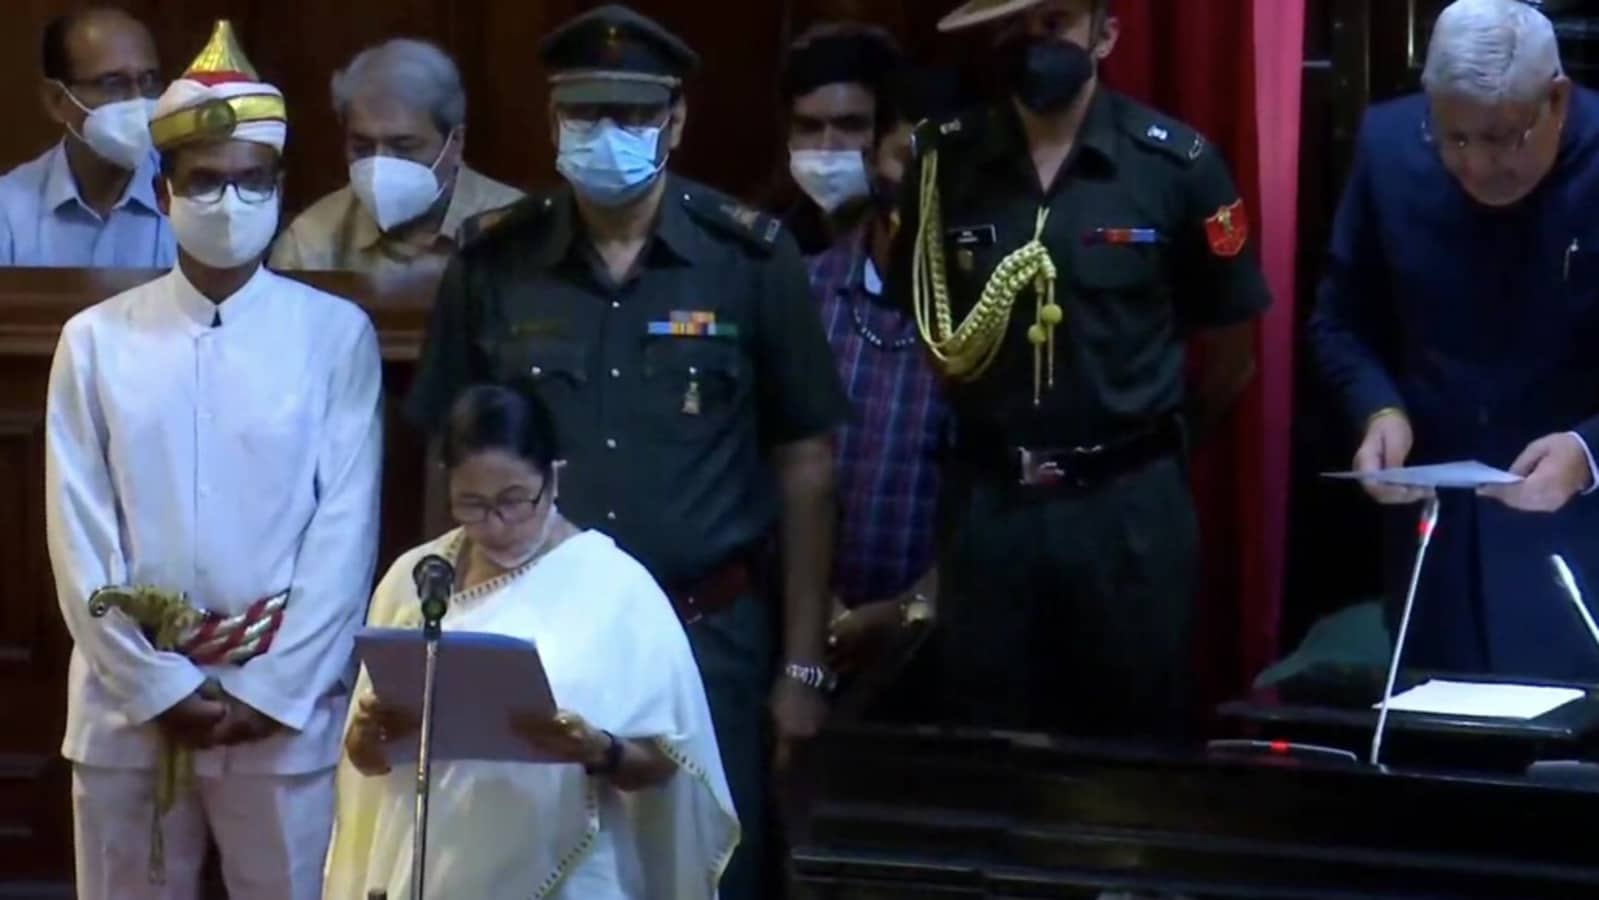 Mamata Banerjee, 2 other TMC MLAs take oath of office in presence of governor Jagdeep Dhankhar